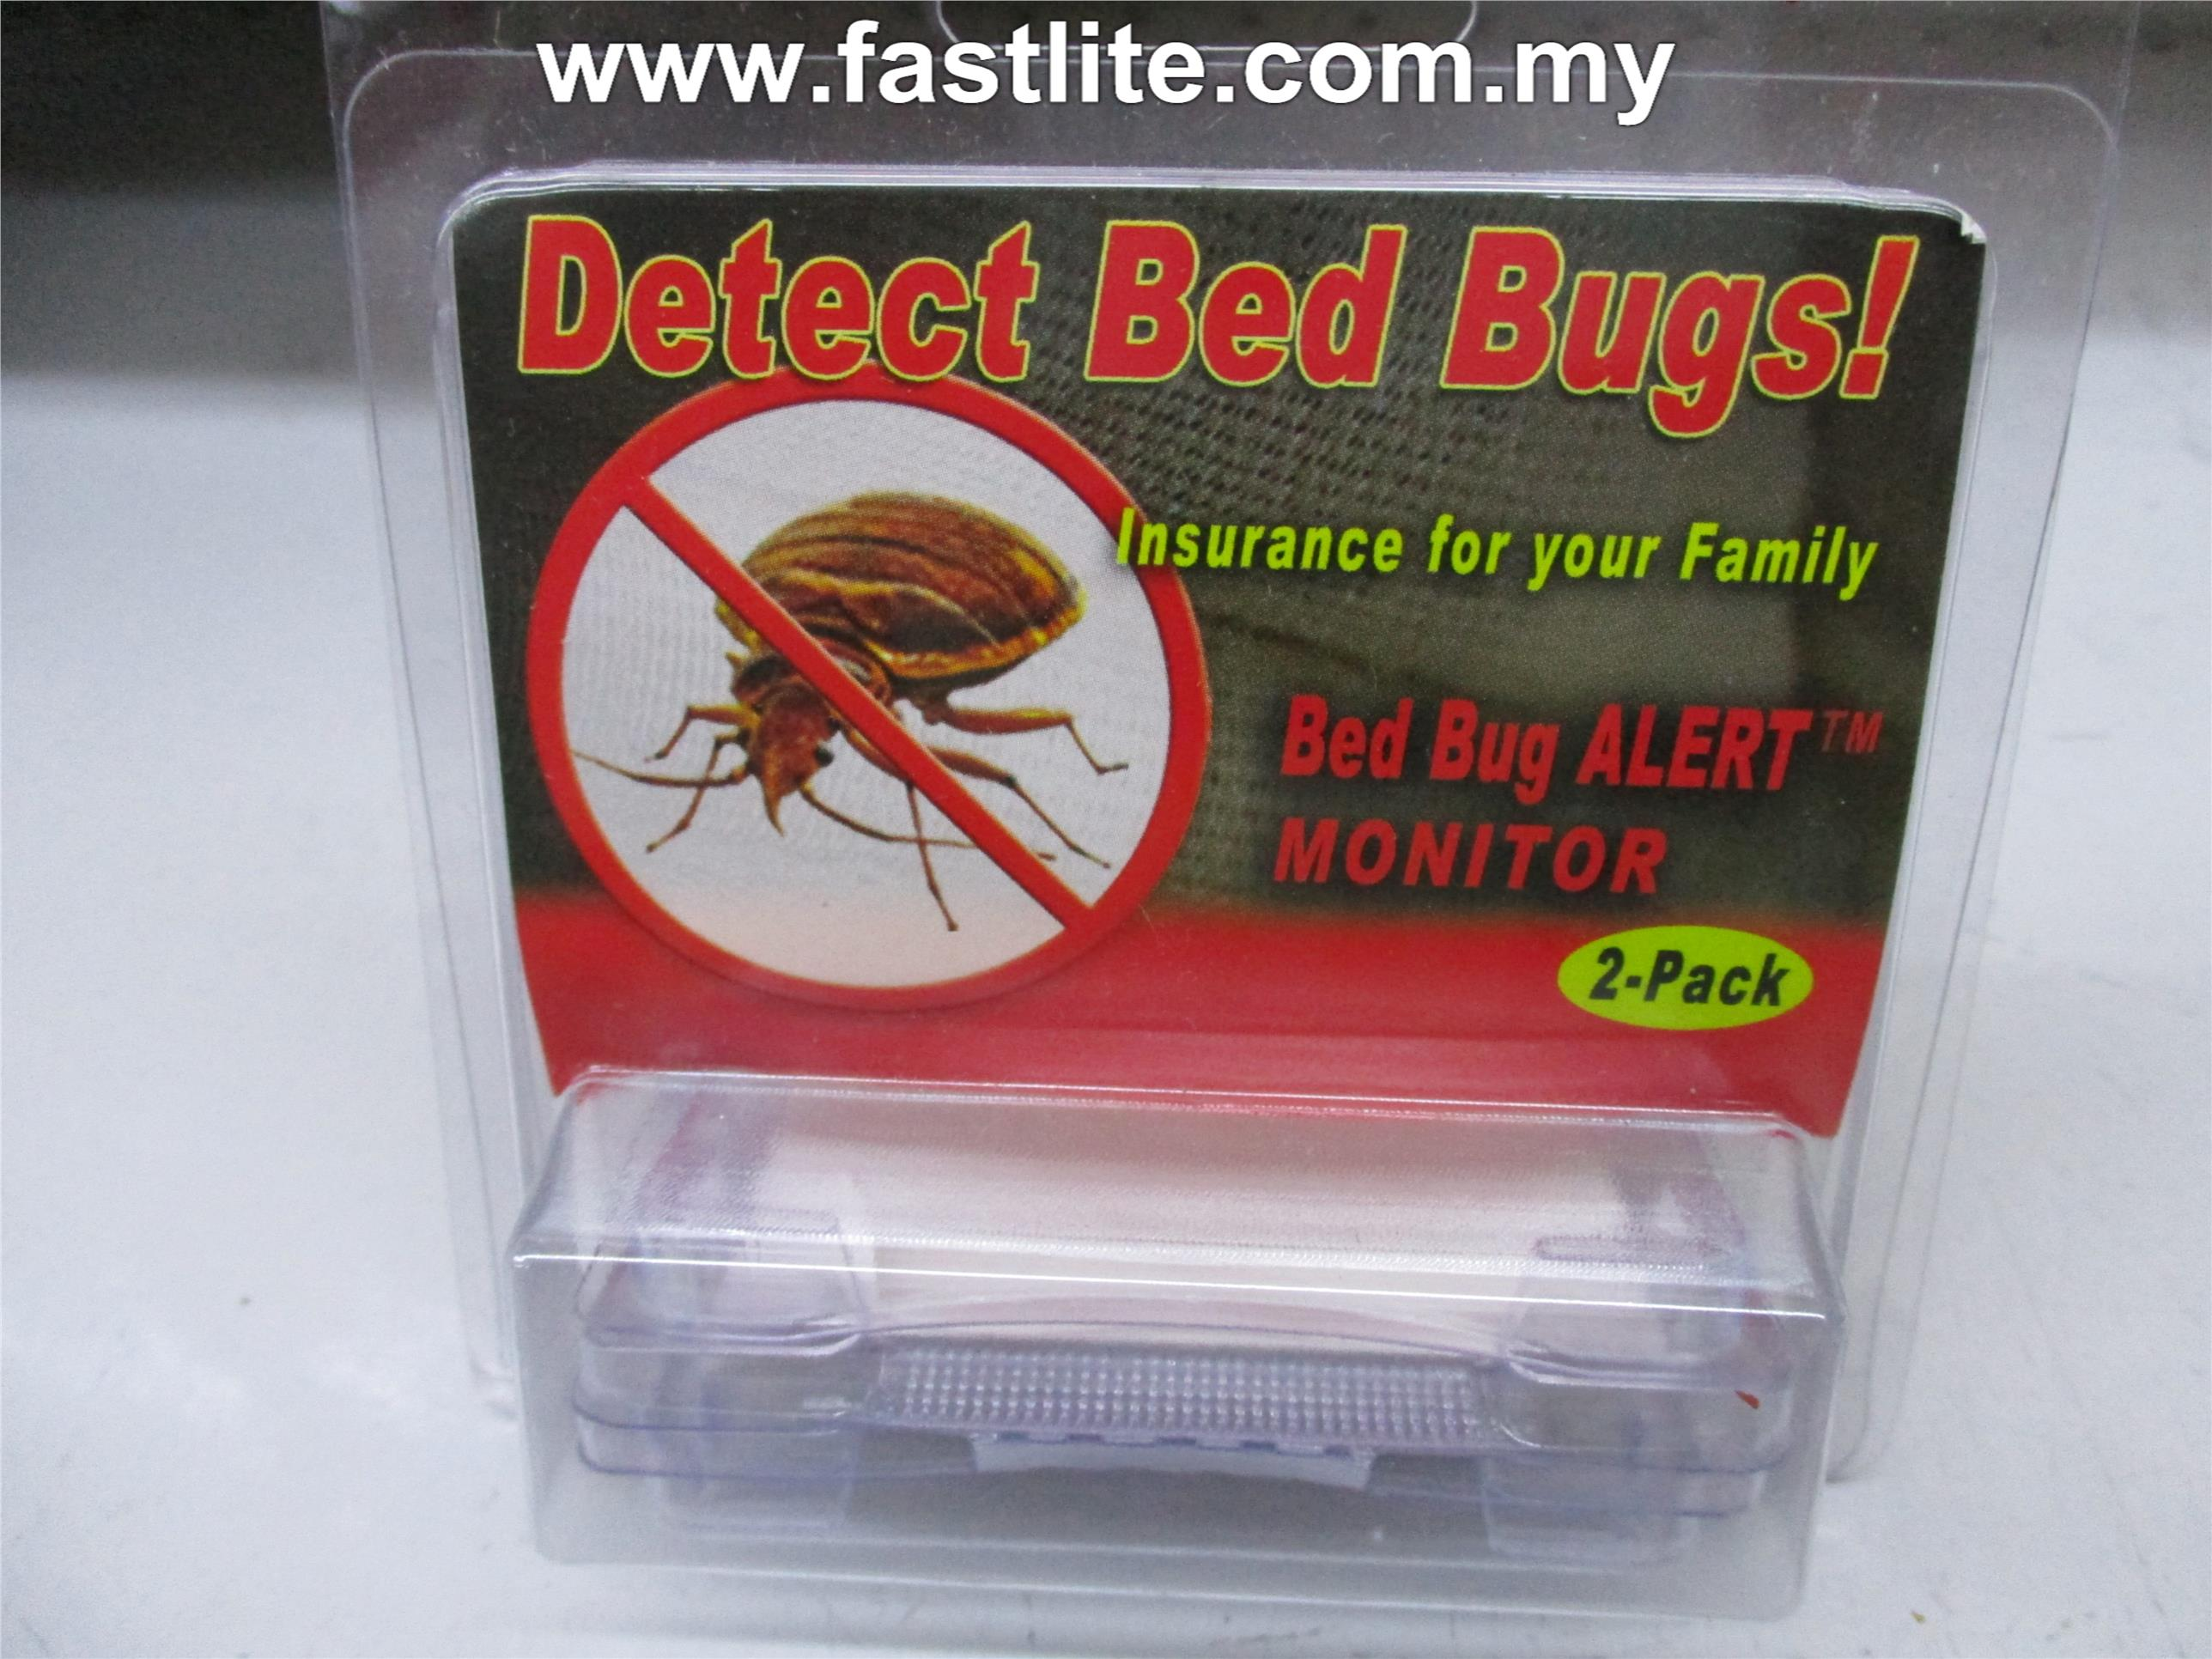 Bed bugs alert monitor 2 pc end 12 26 2017 415 pm myt for Bed bug alert monitor